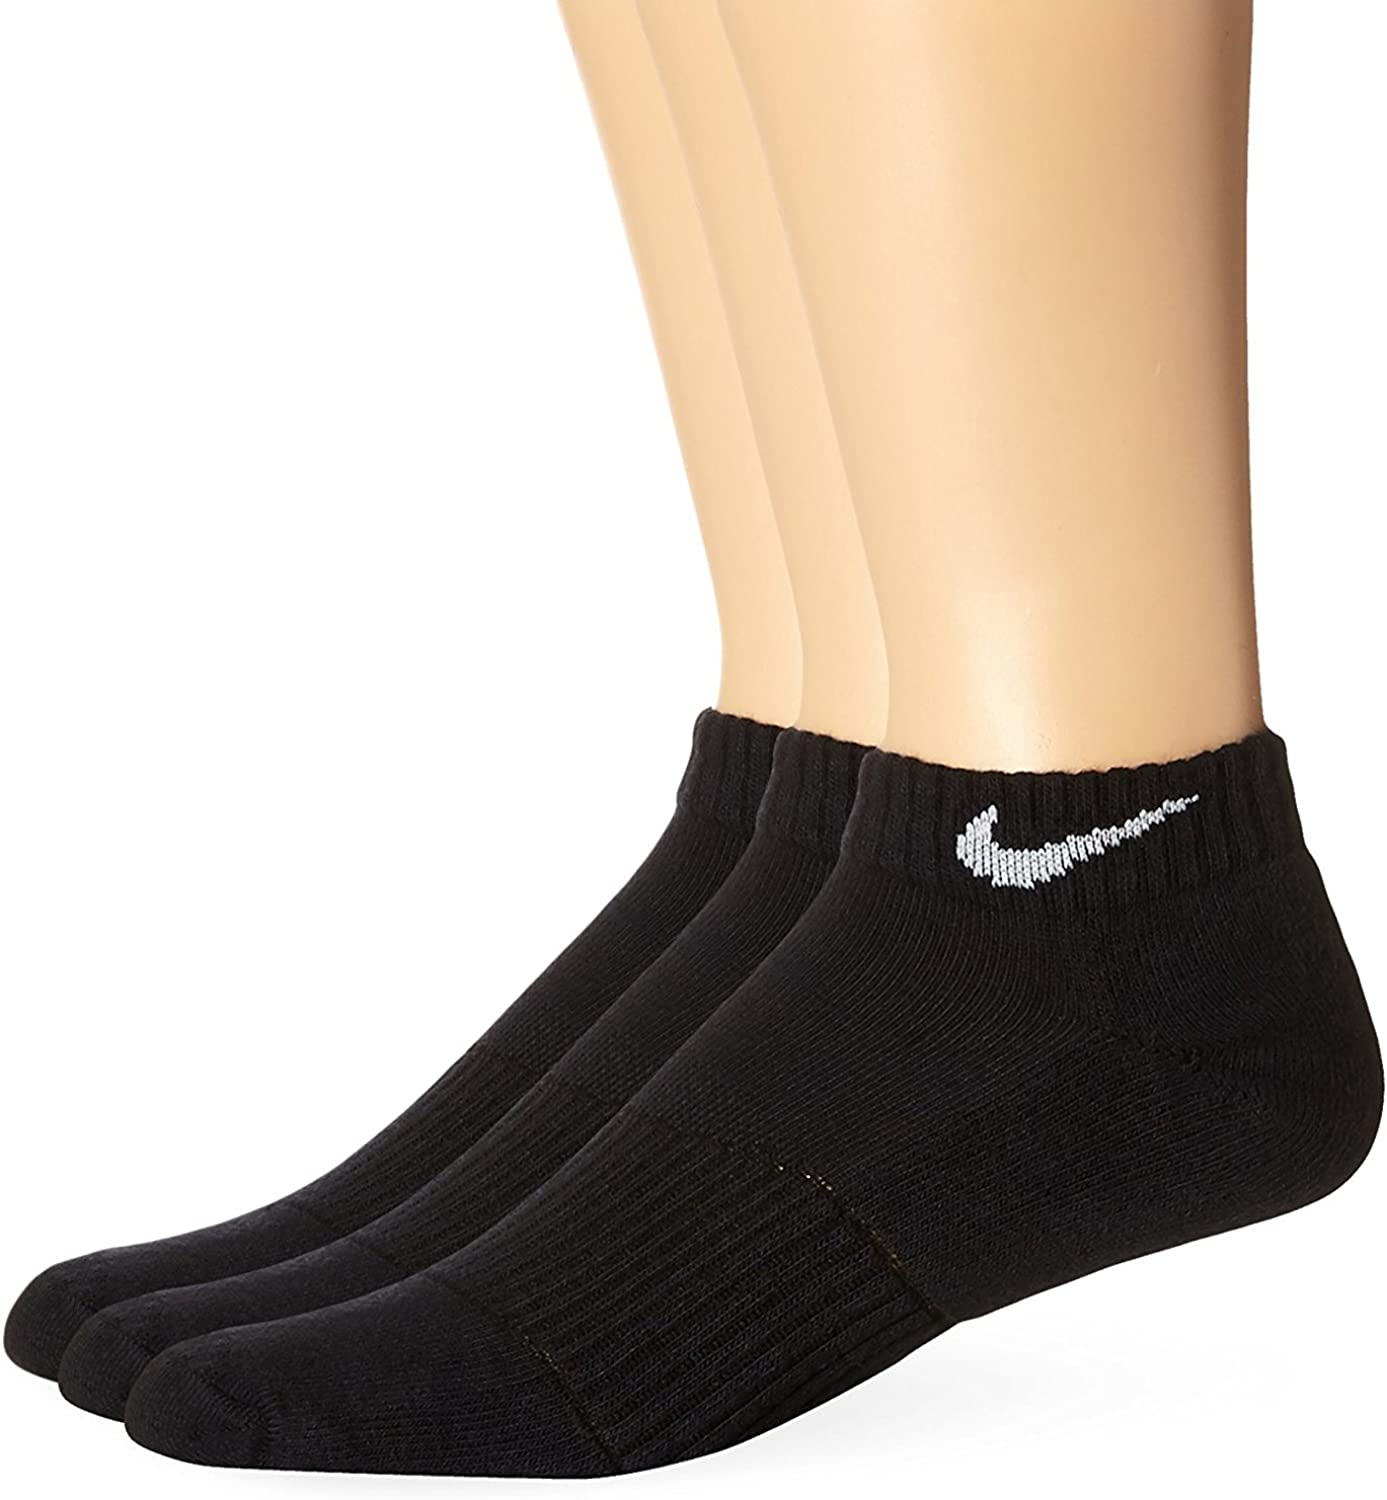 Some reservation NIKE low-pricing Performance Cushion Low Socks Training 3 Pairs